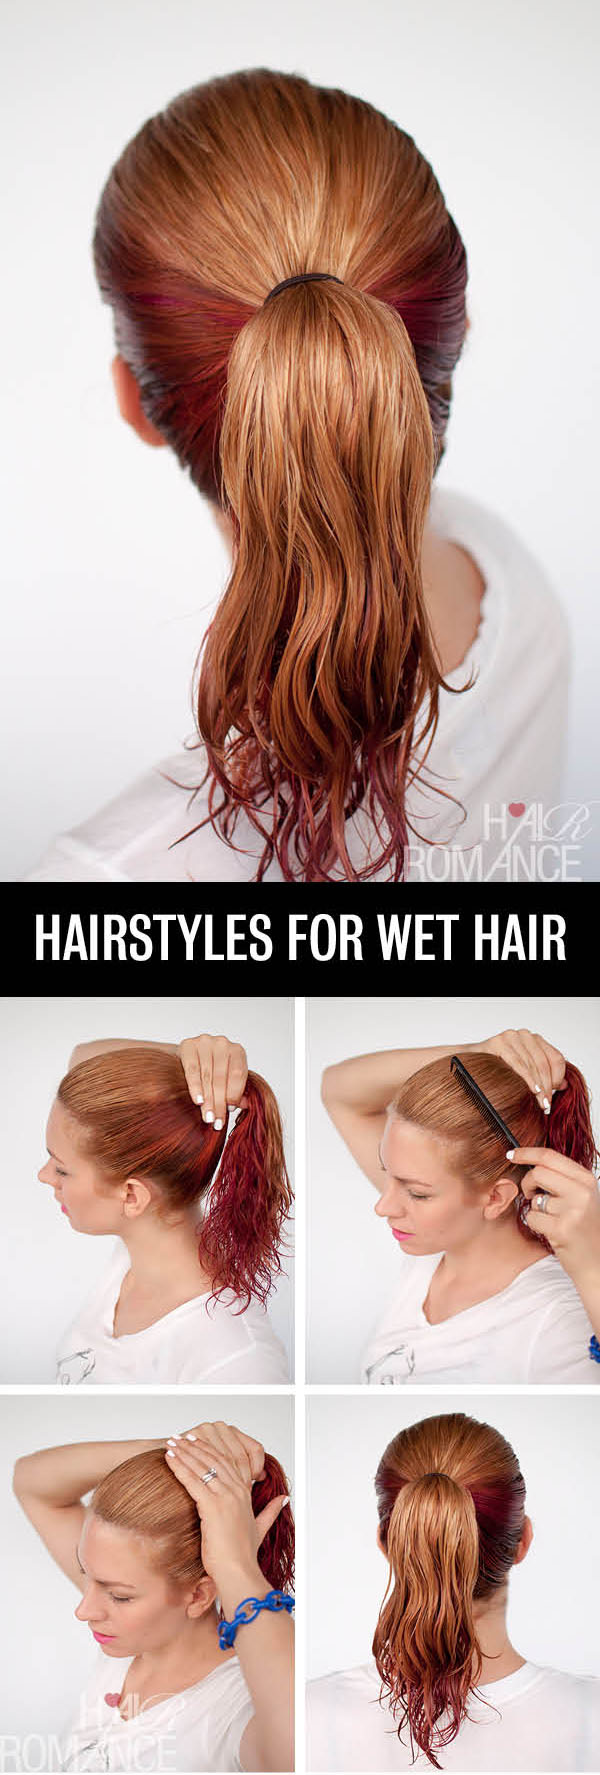 Get ready fast with 12 easy hairstyle tutorials for wet hair - Hair